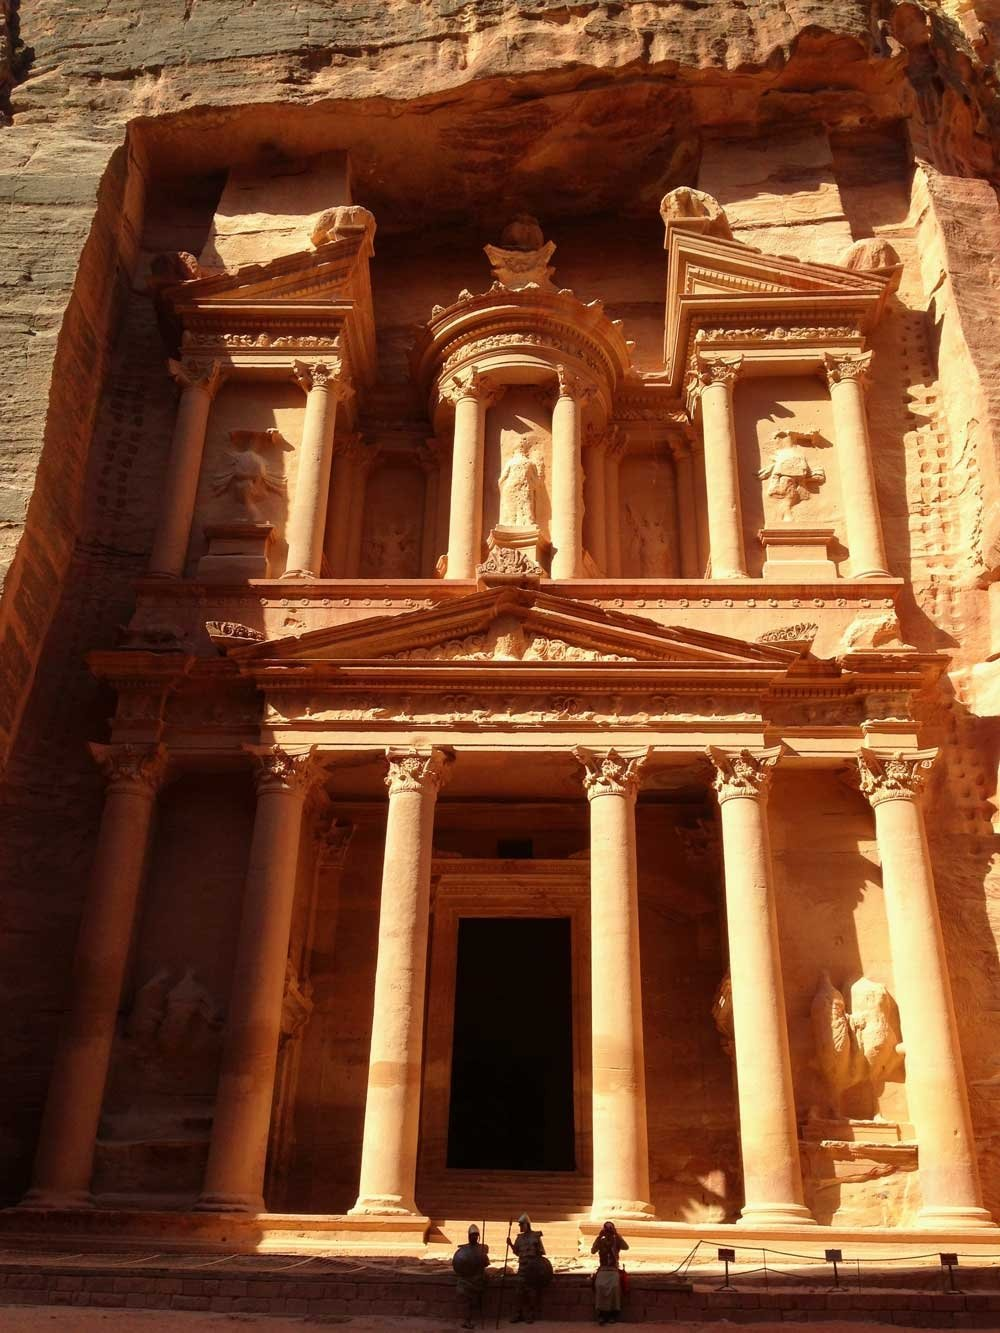 Tips for exploring Petra: The Treasury